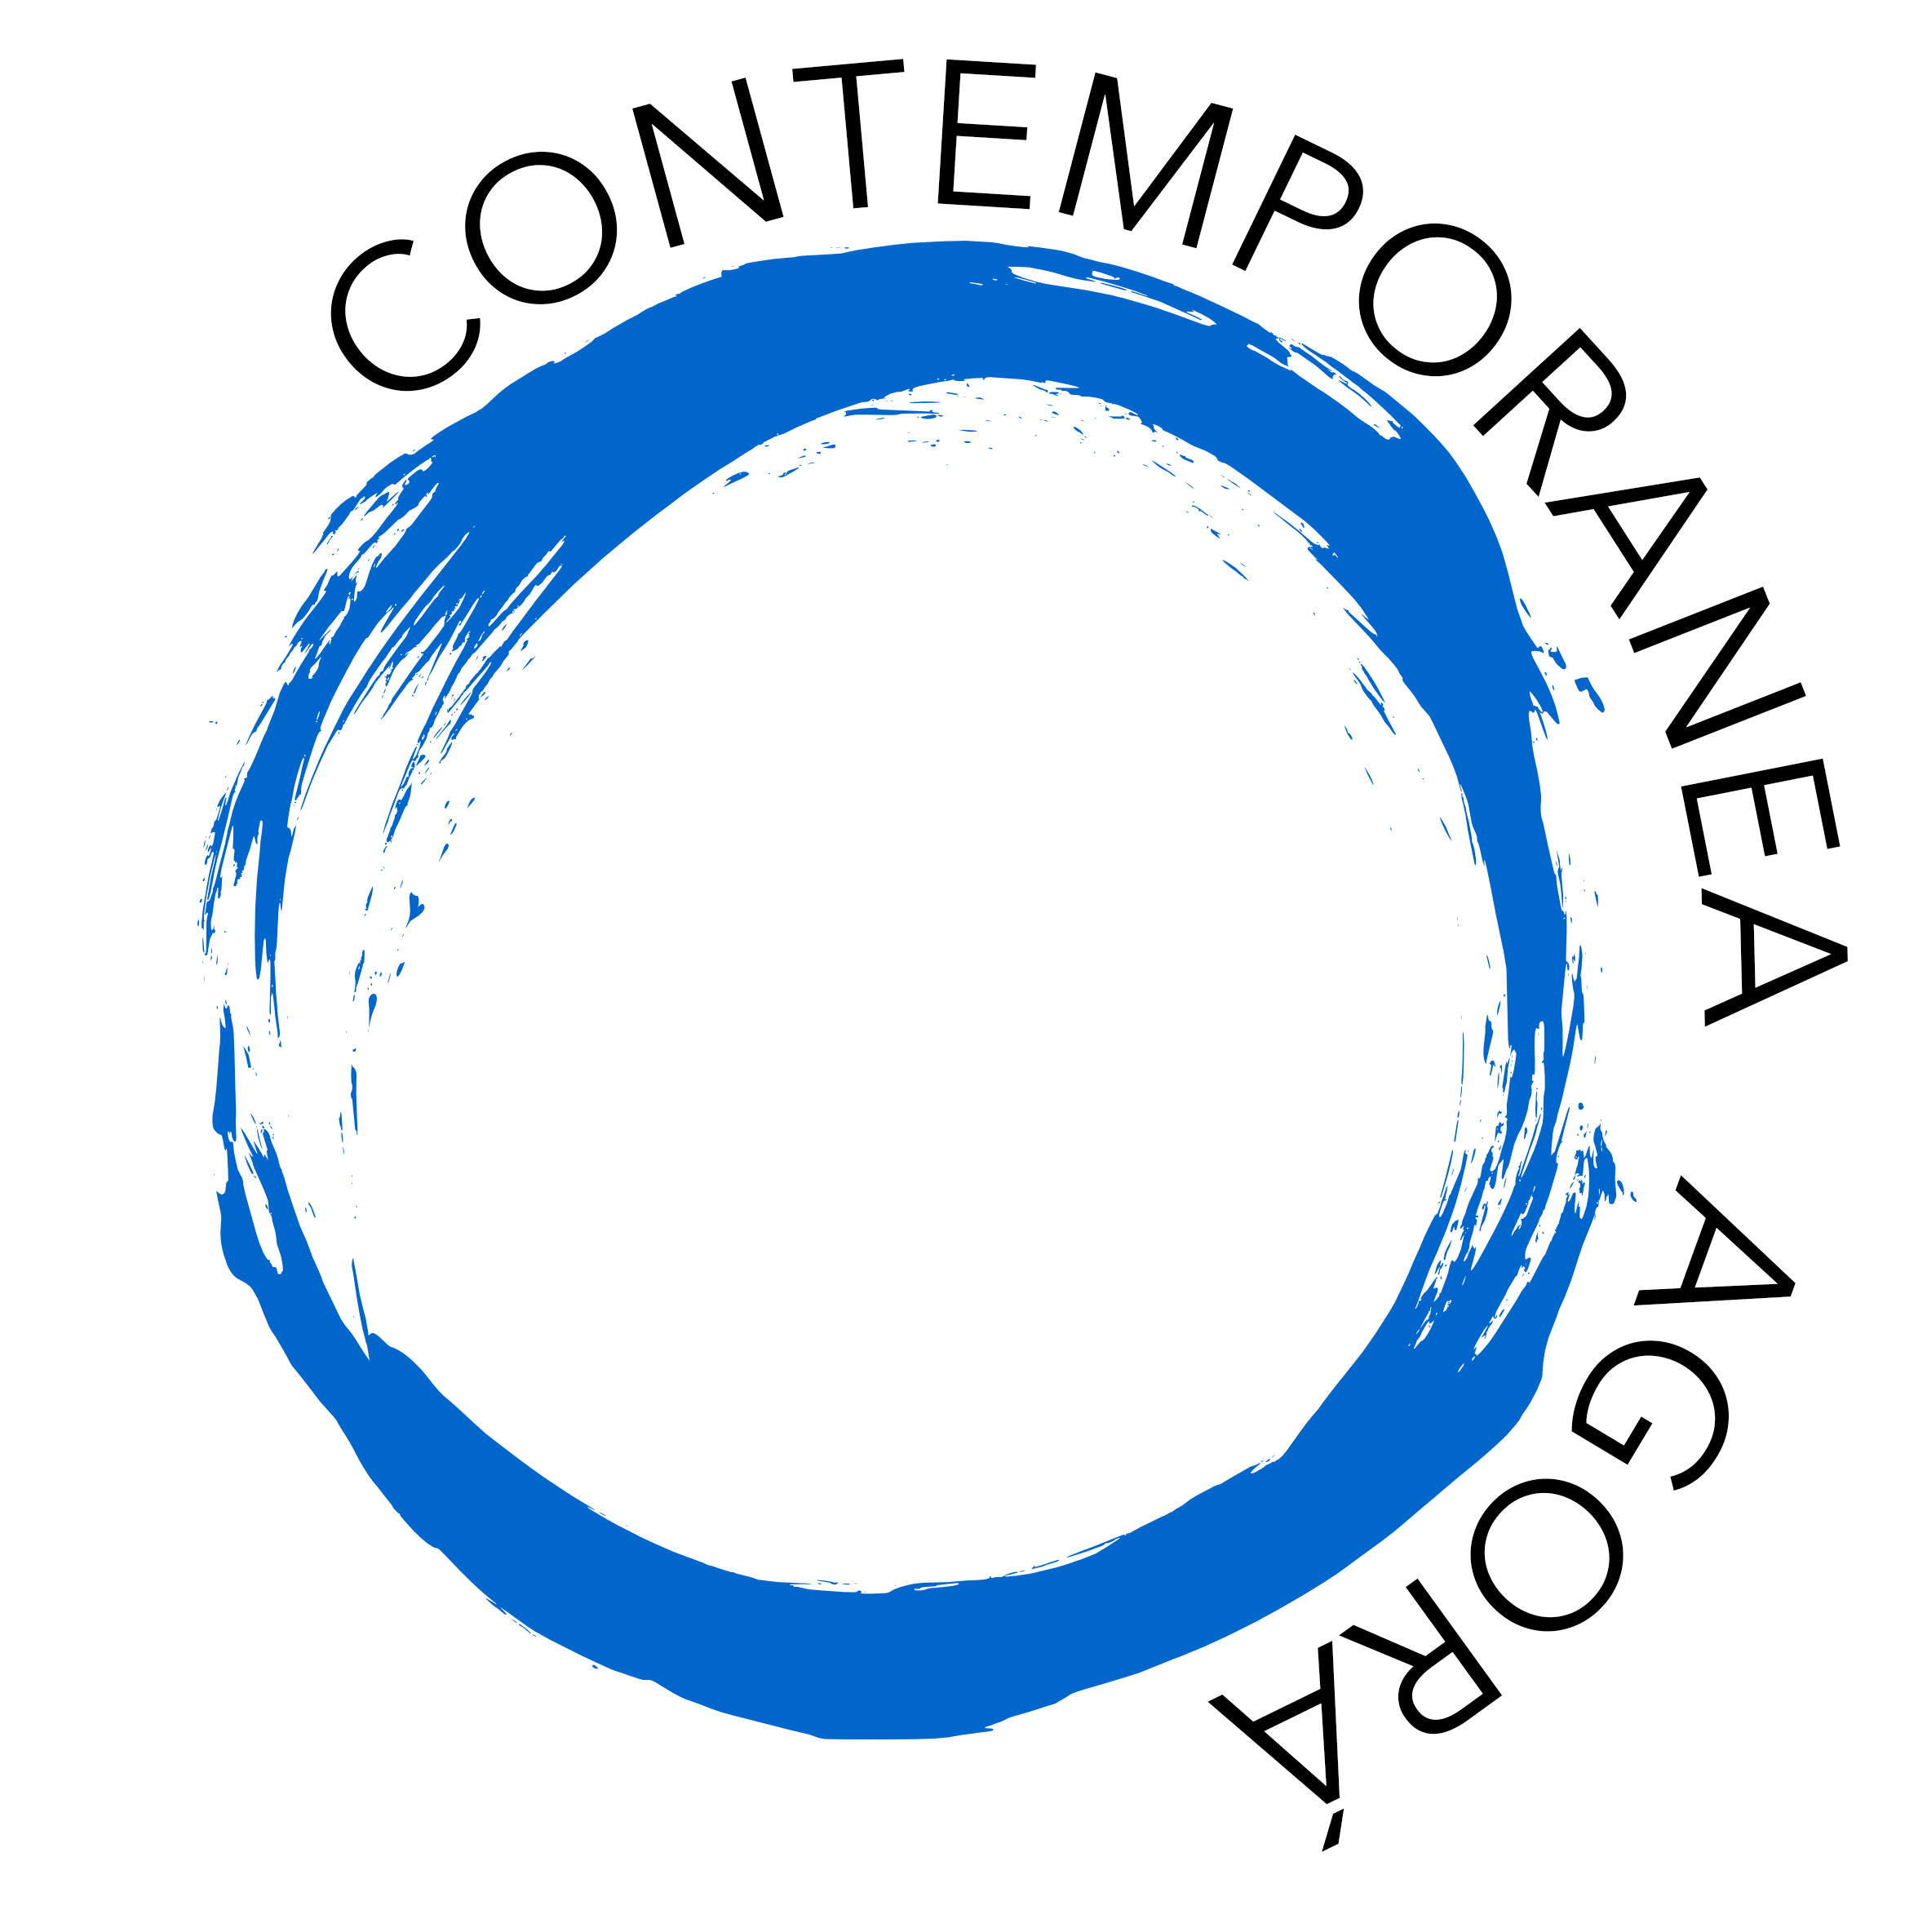 Contemporanea 2019